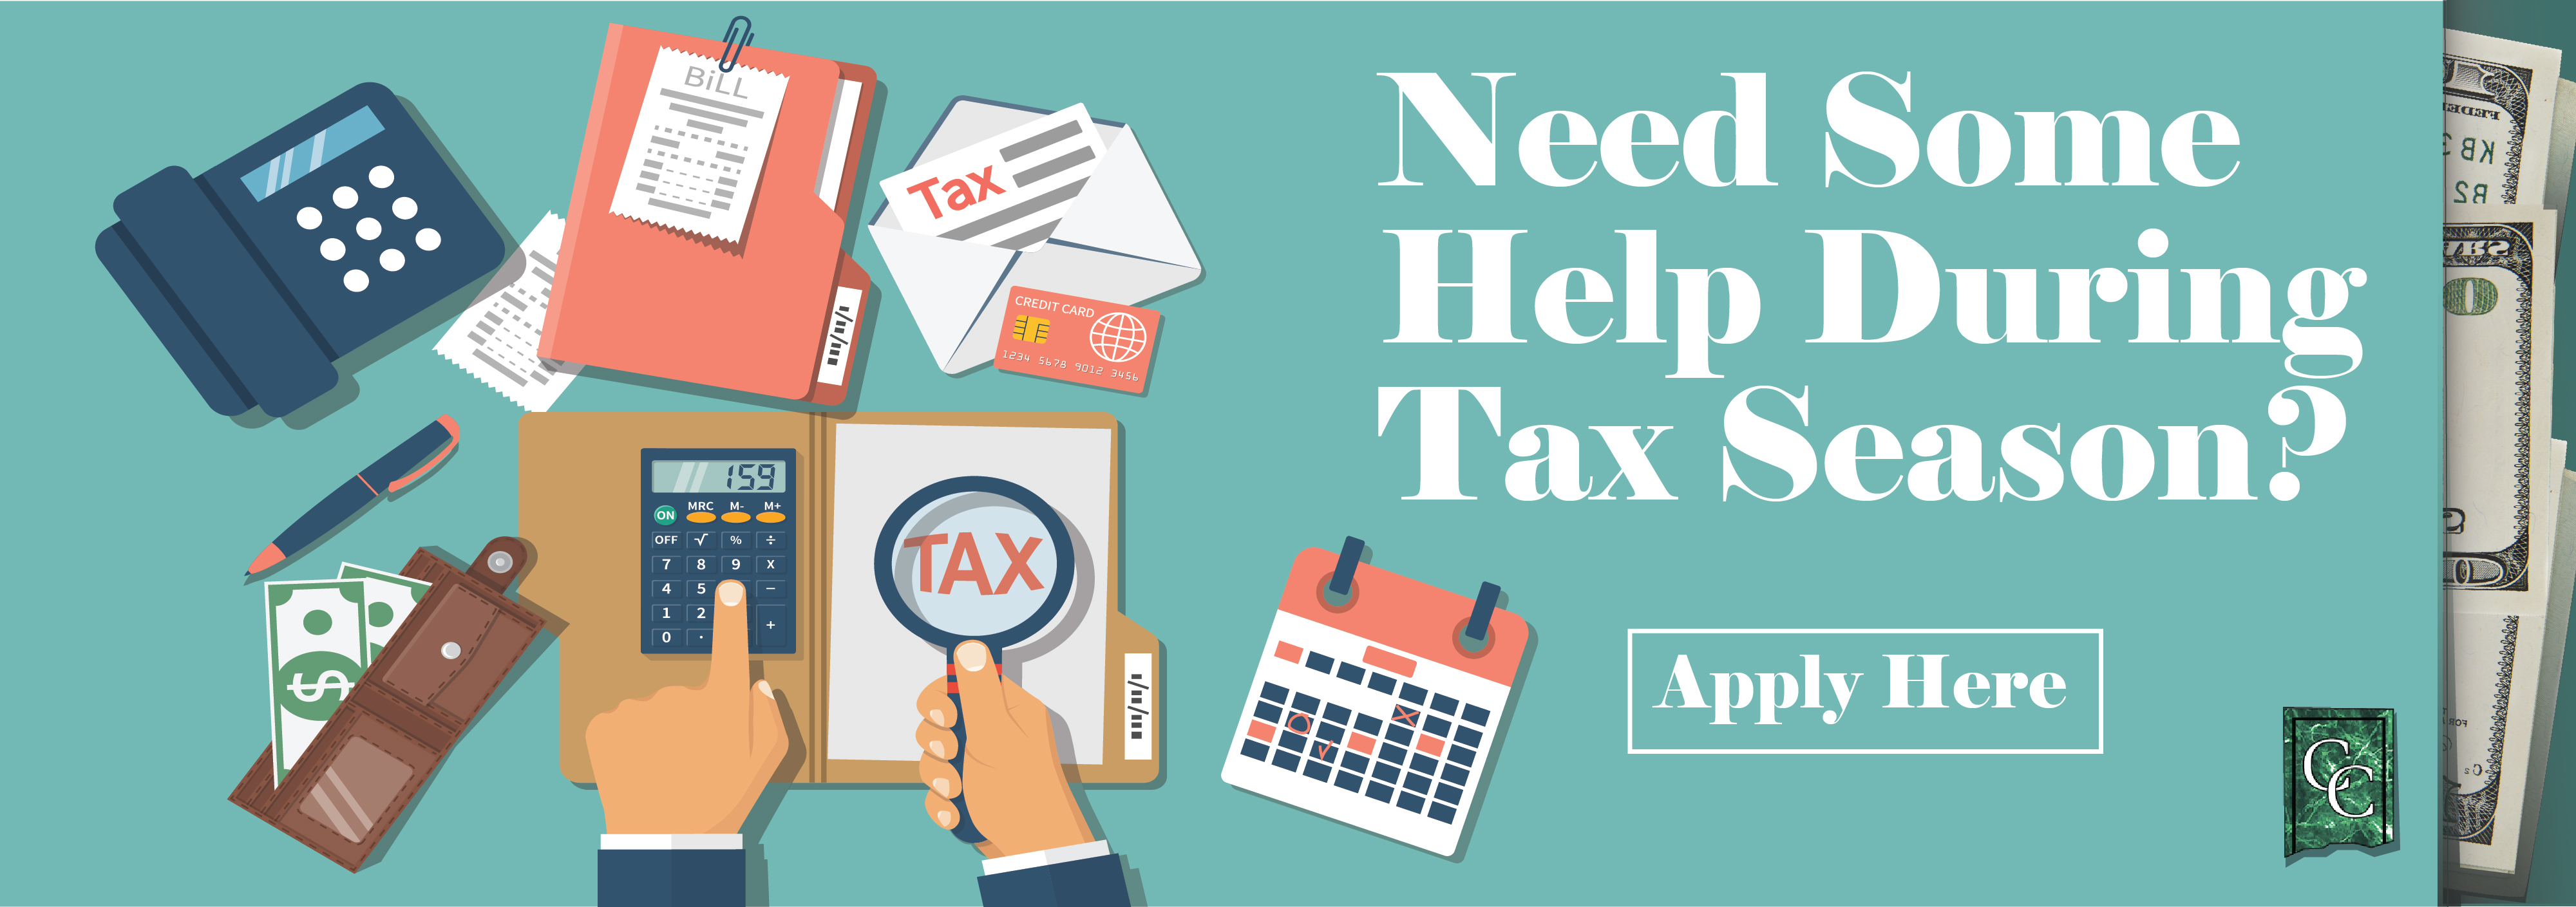 Tax Time Loan. Credit Concepts specializes in Auto Financing & Personal Loans in Oregon and Washington.